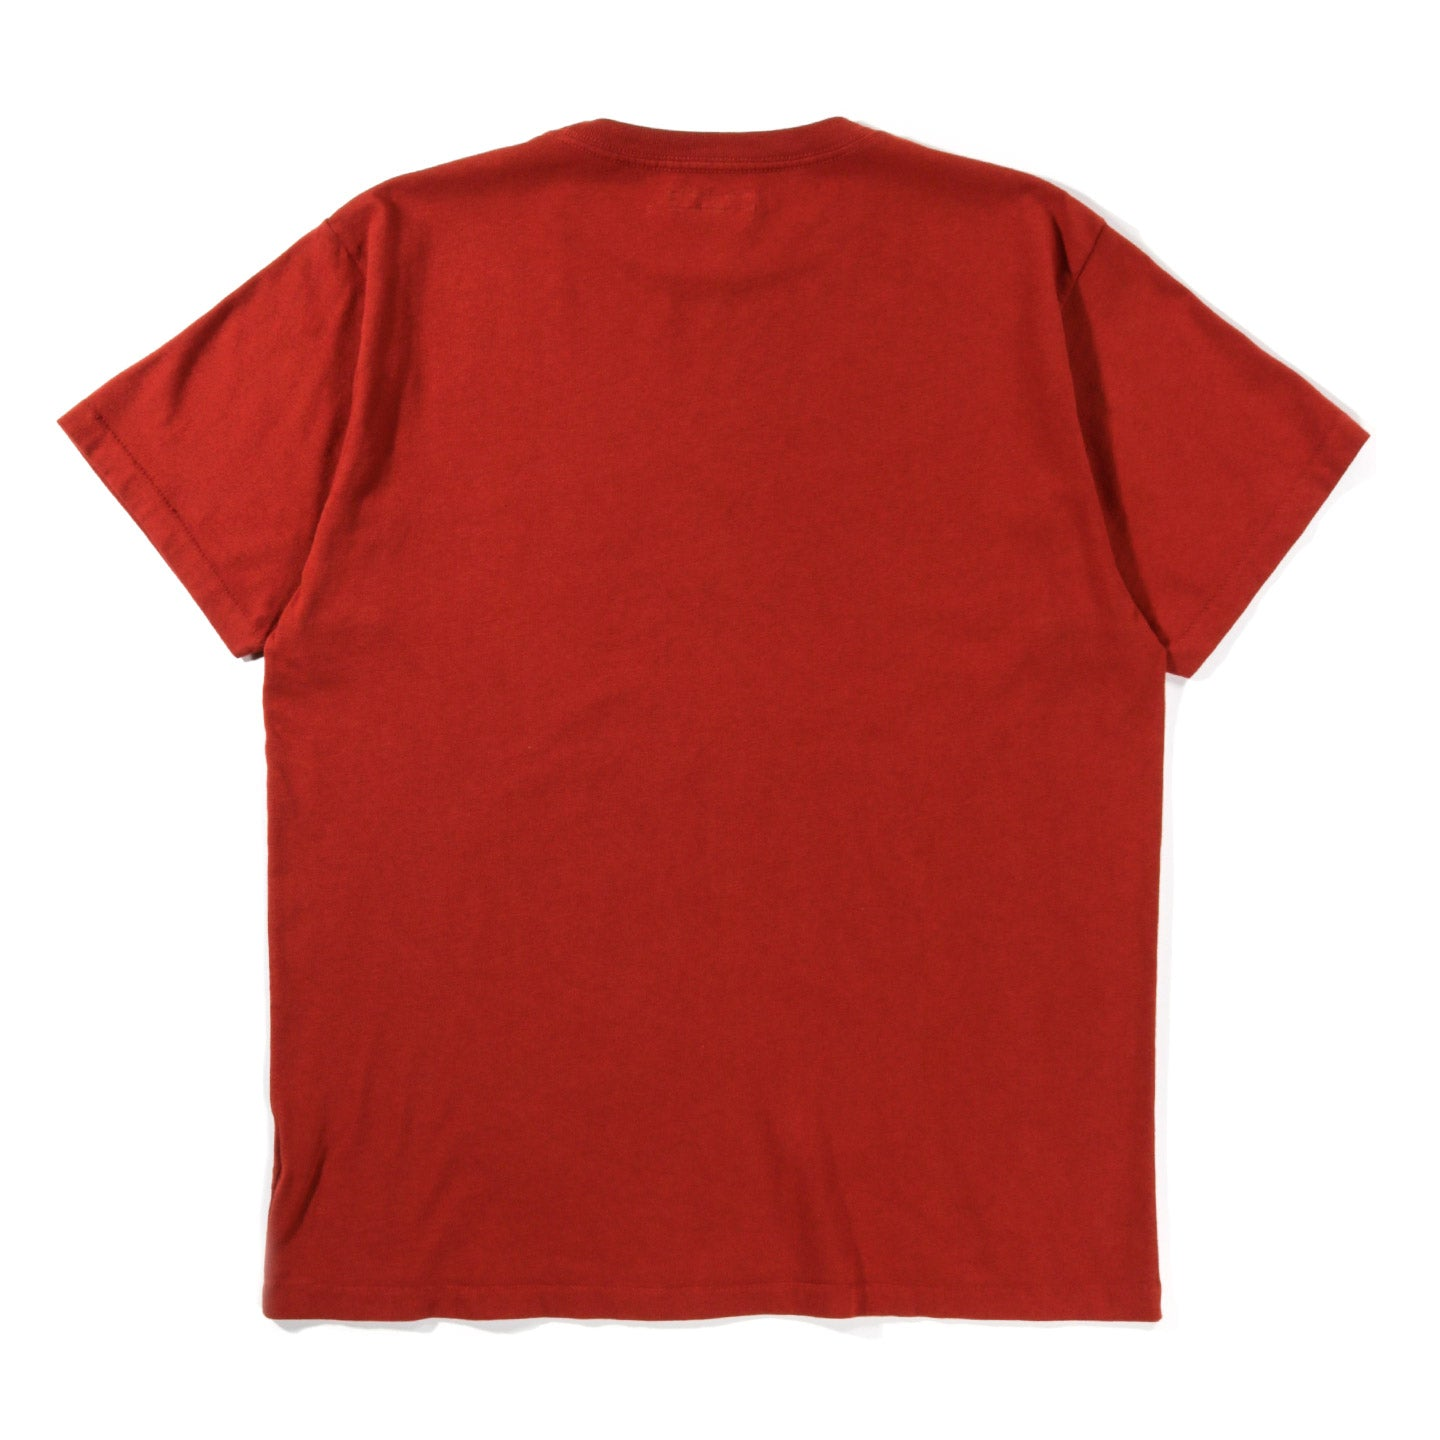 LADY WHITE CO. LITE JERSEY T-SHIRT RED OCHRE